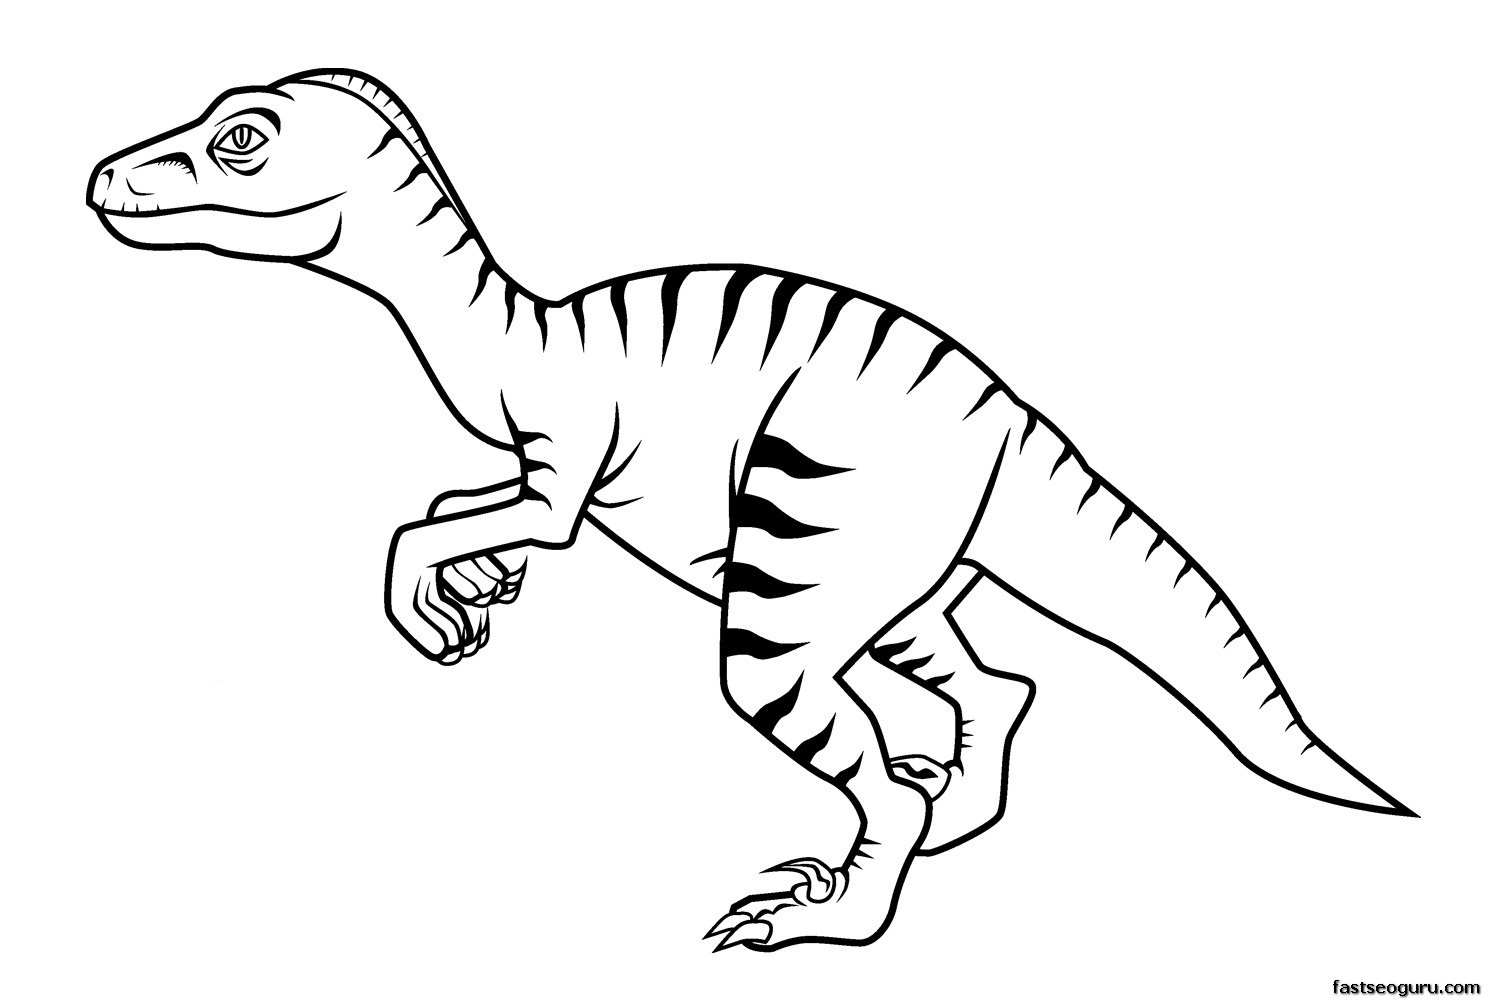 dinasaur coloring pages - photo#8